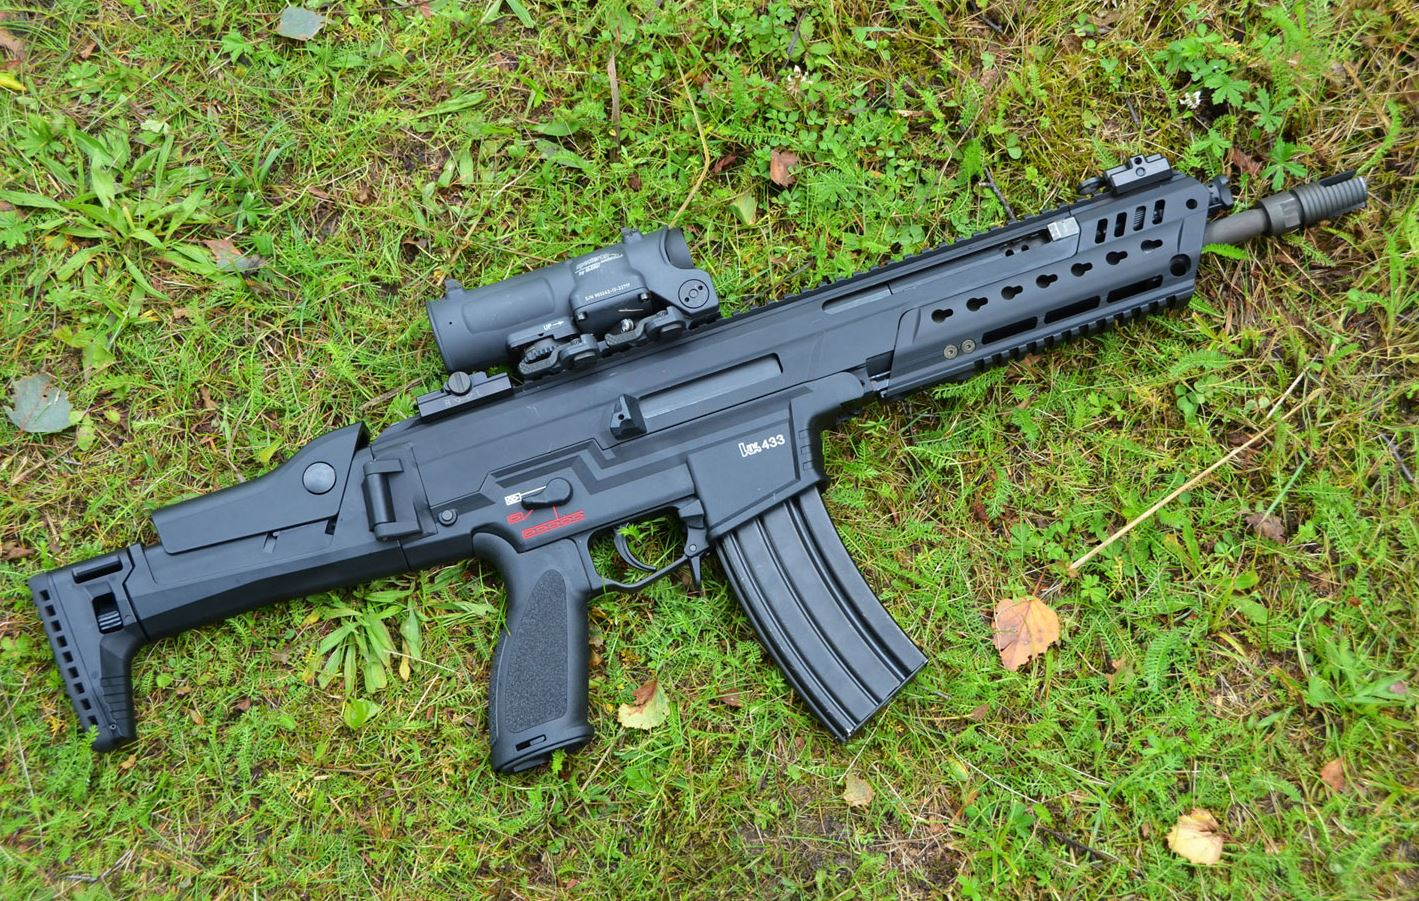 Fast In German >> HK433 - The first practical test -The Firearm Blog